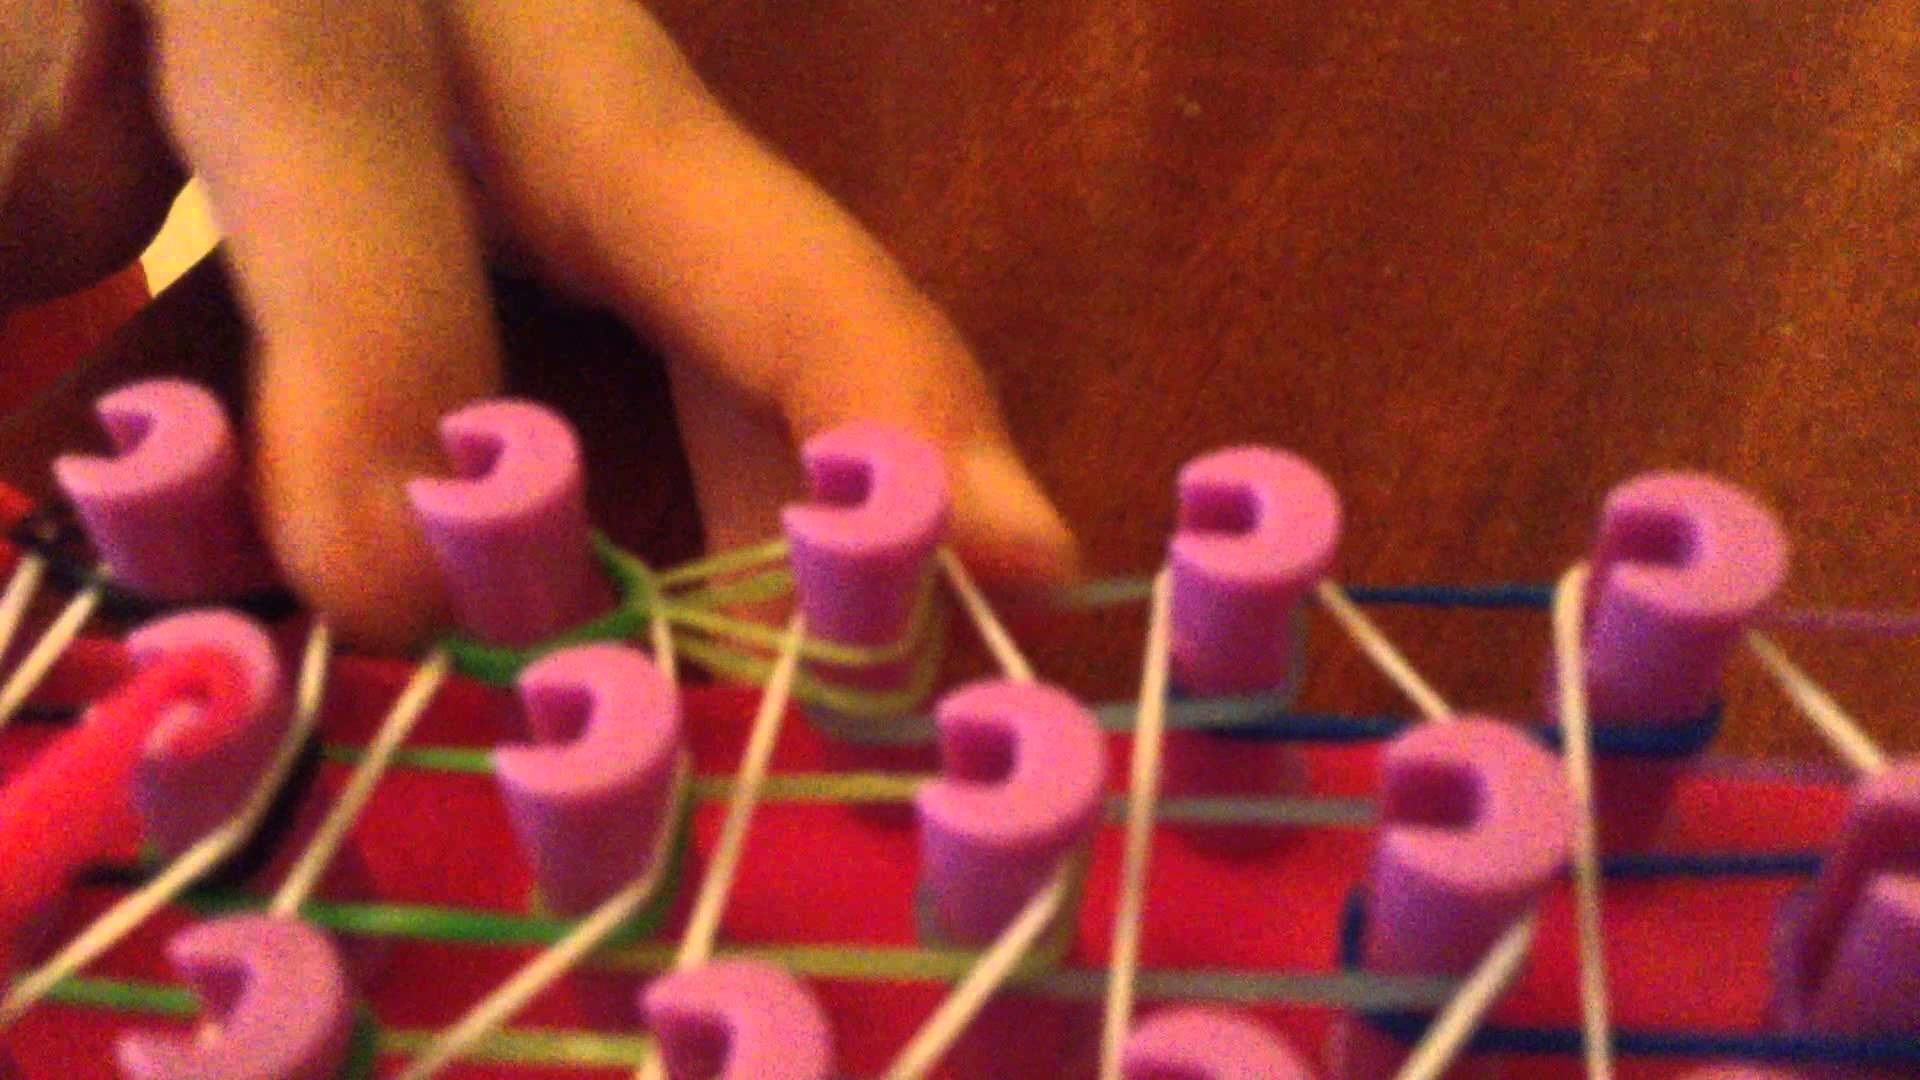 Rainbow loom italiano tutorial #001